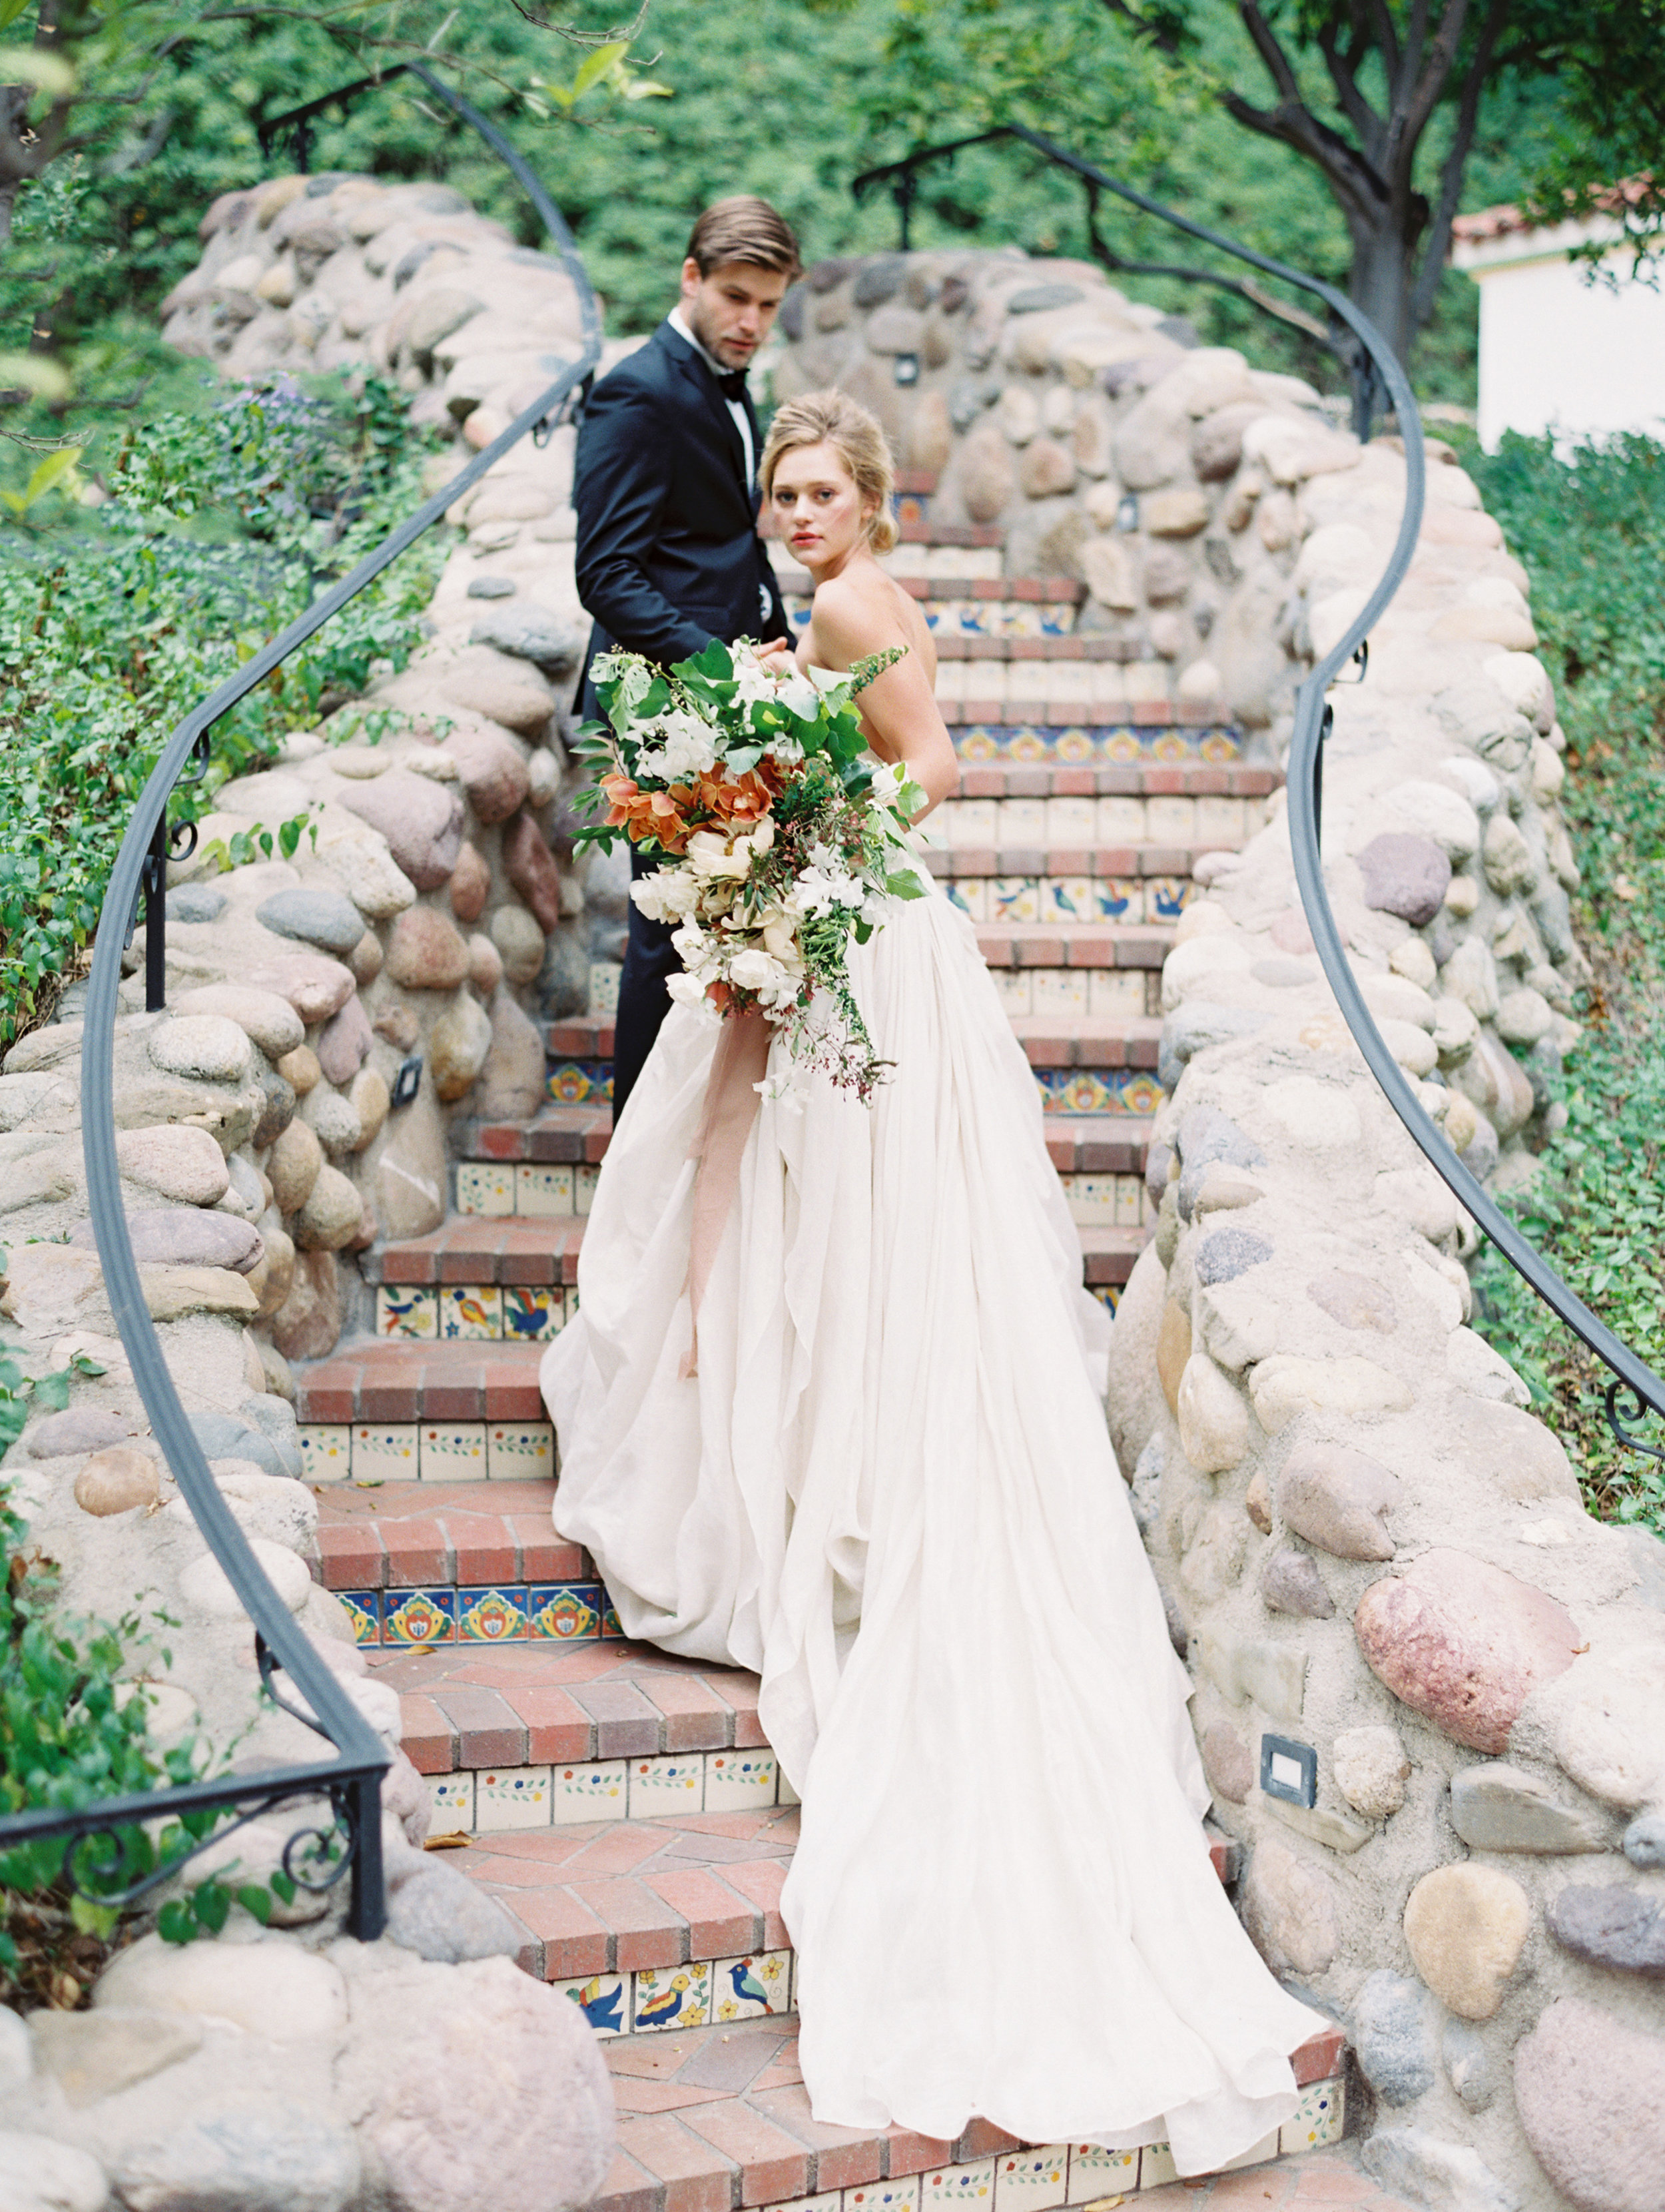 Jon Cu80- Rancho-Las-Lomas-california-film-wedding-bride-groom-spanish-peach.jpg